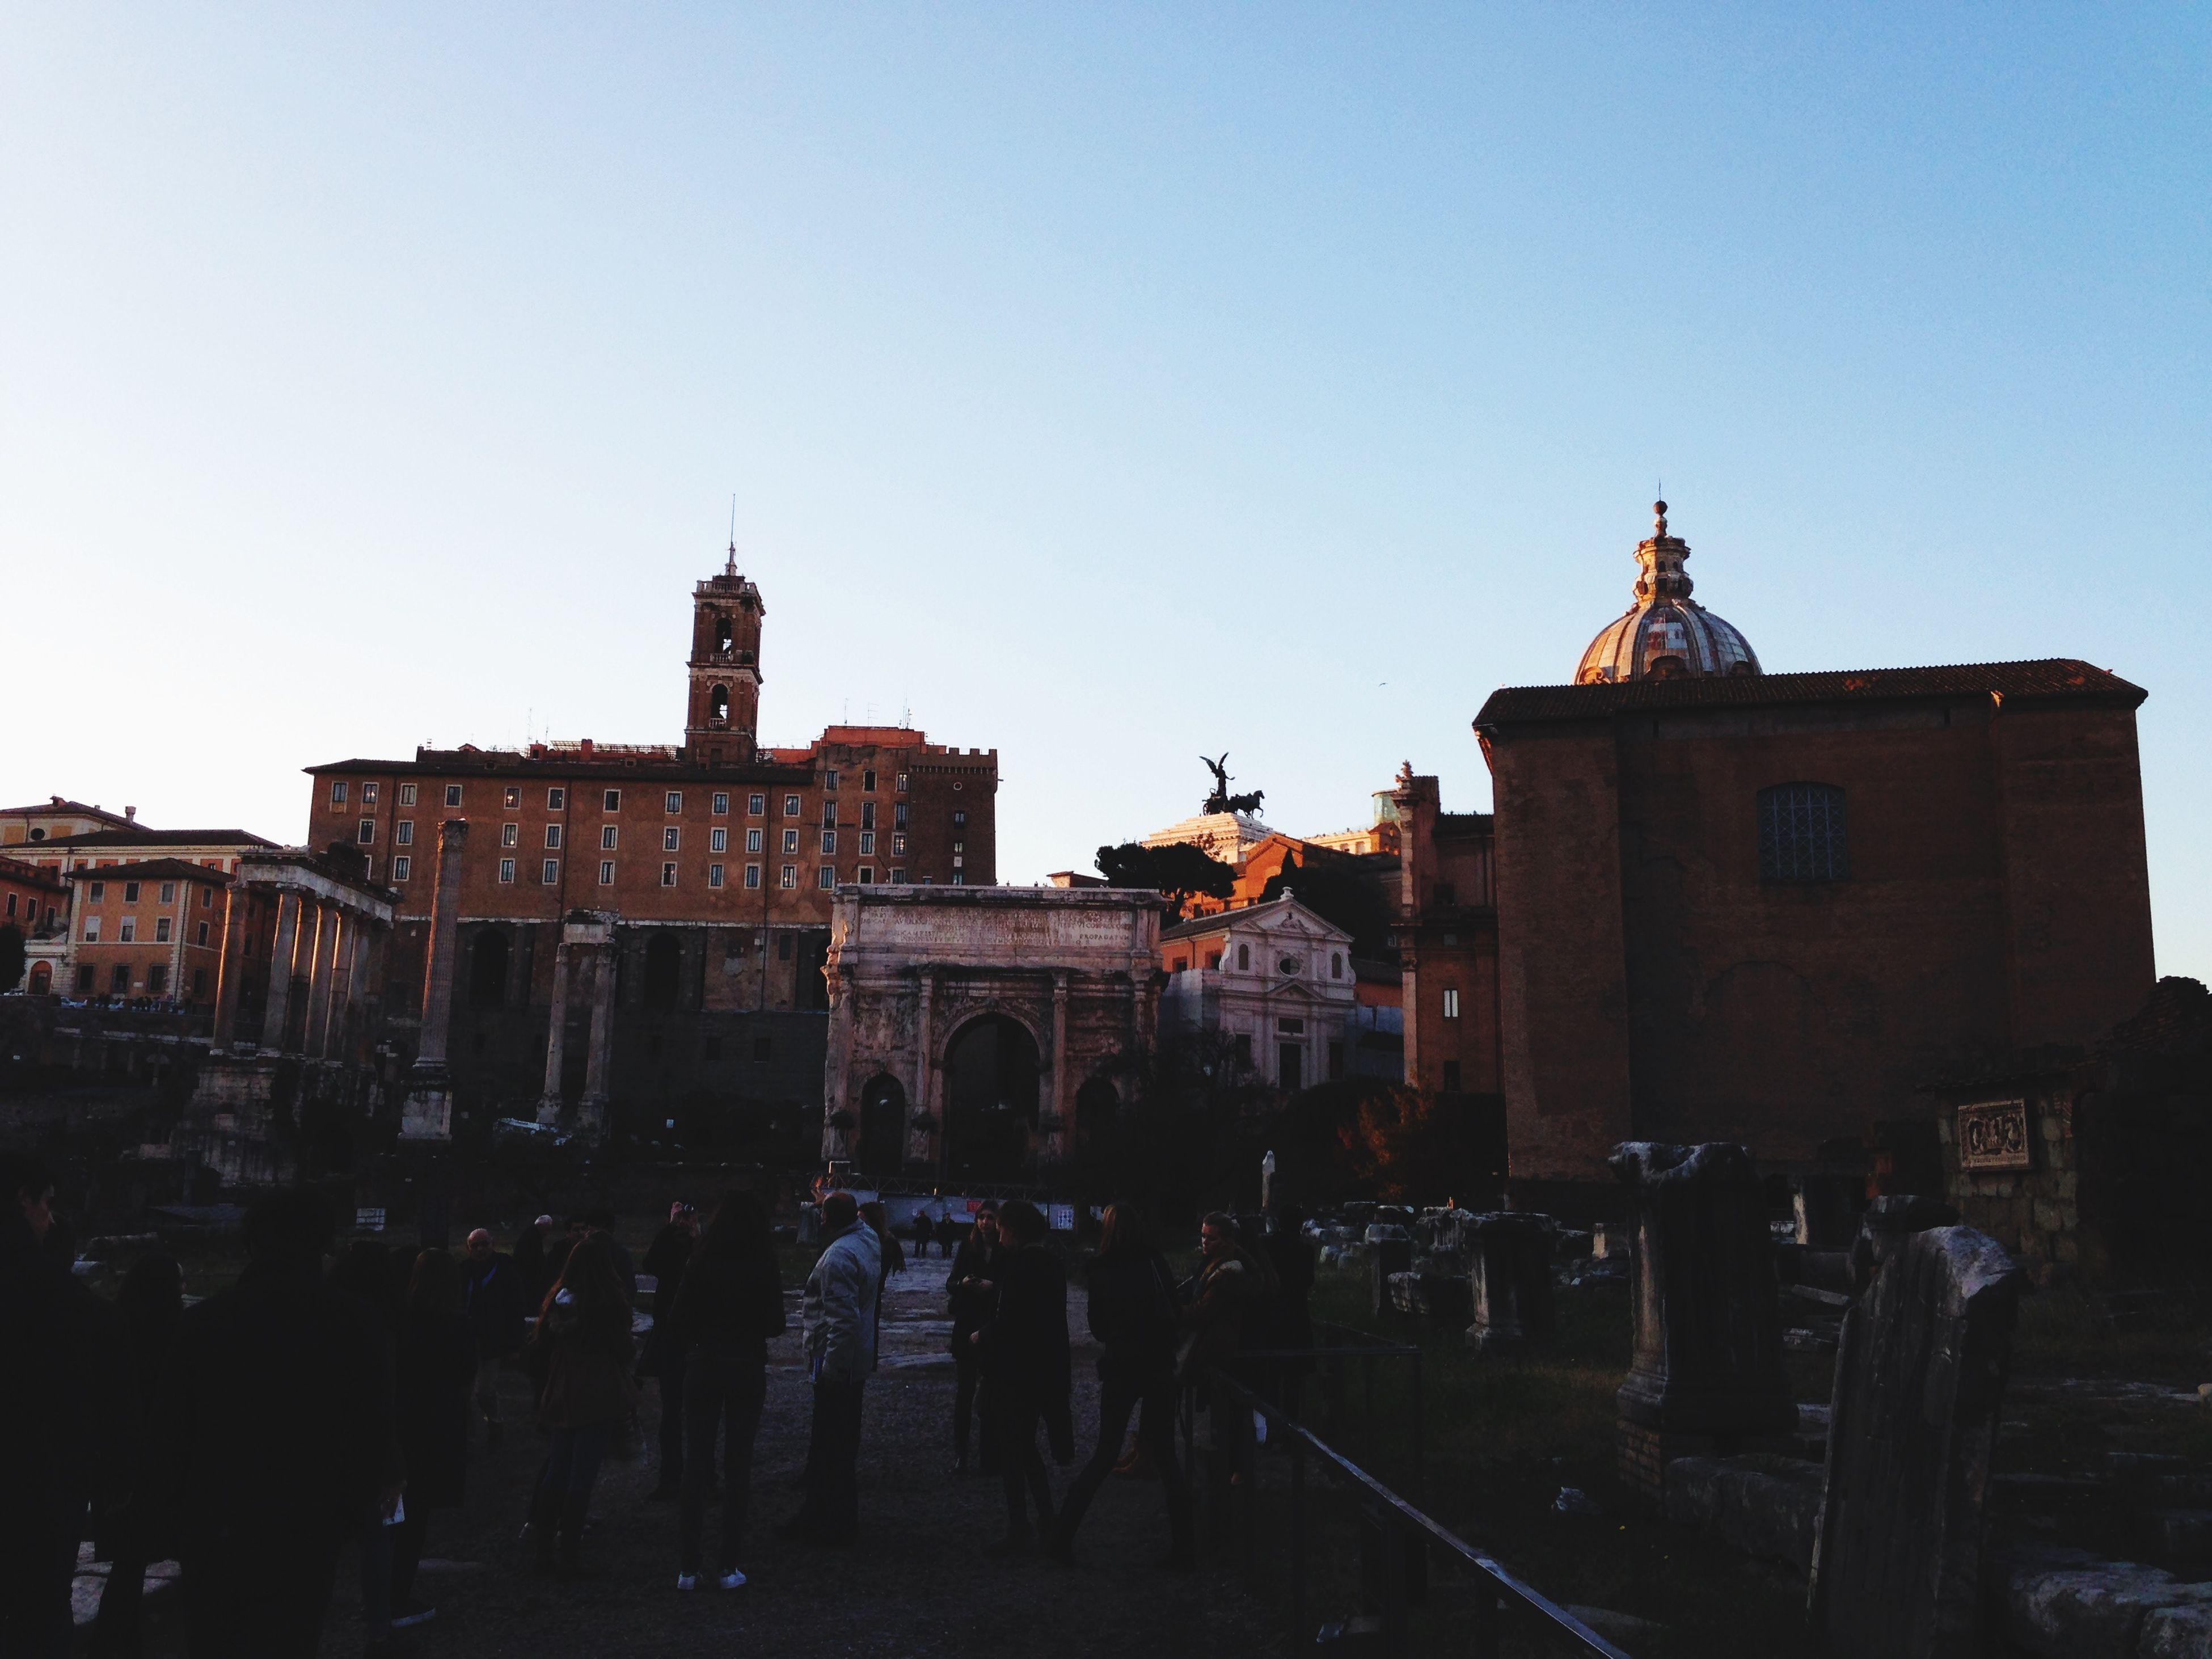 clear sky, architecture, built structure, building exterior, copy space, large group of people, men, person, history, walking, lifestyles, travel destinations, leisure activity, street, outdoors, travel, city, group of people, city life